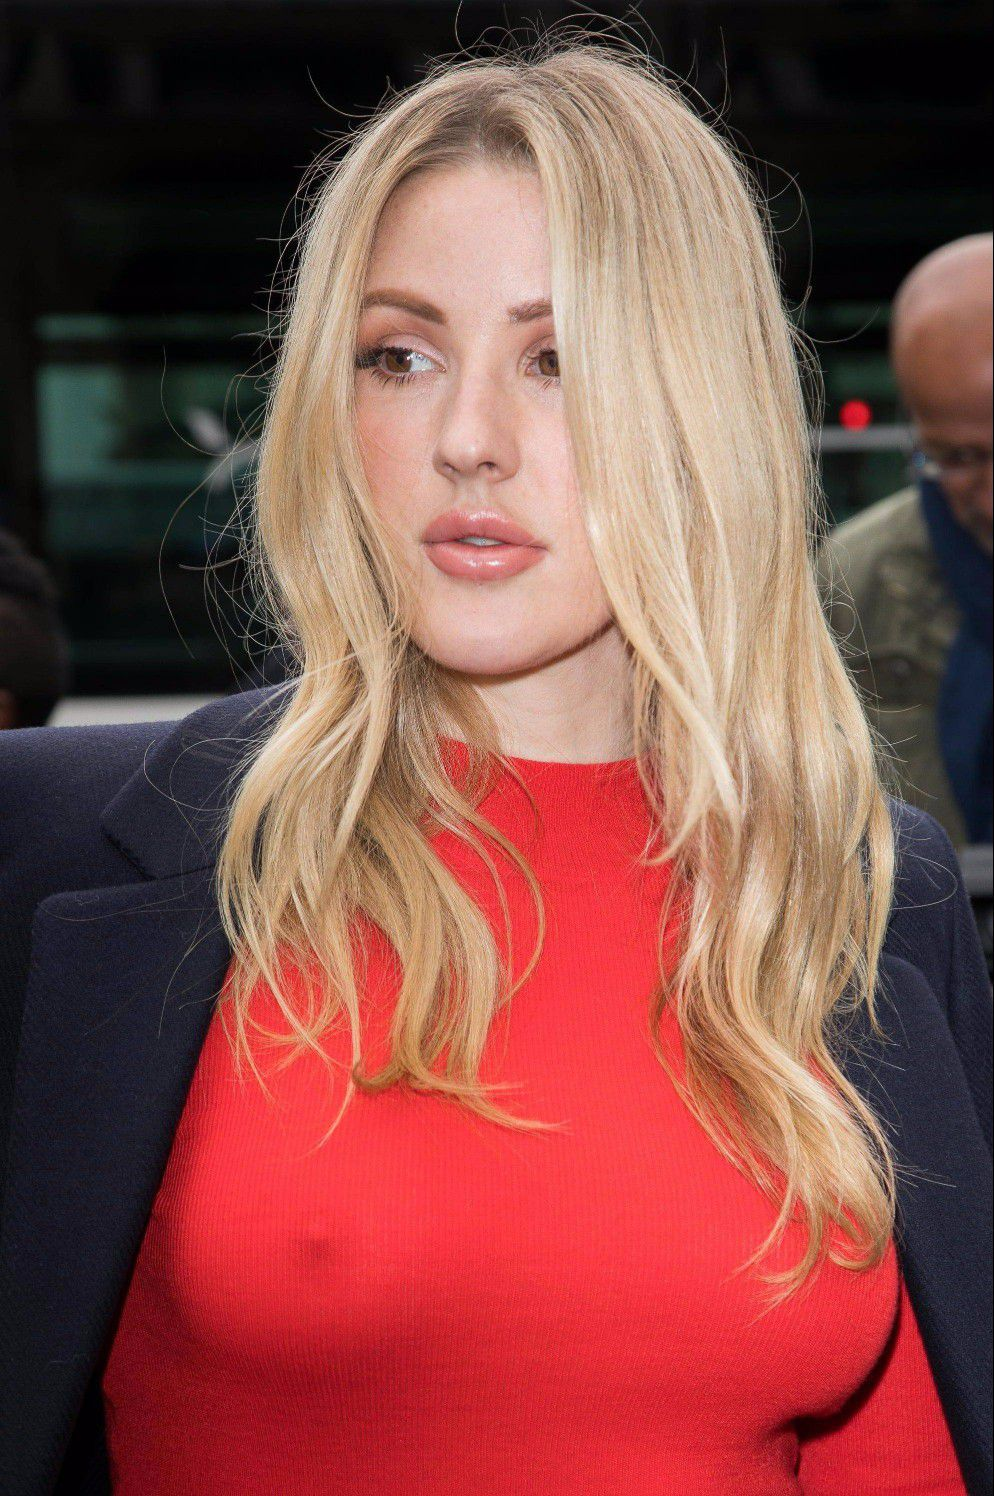 ellie-goulding-braless-in-see-thru-top-at-a-fashion-show-in-paris-3686